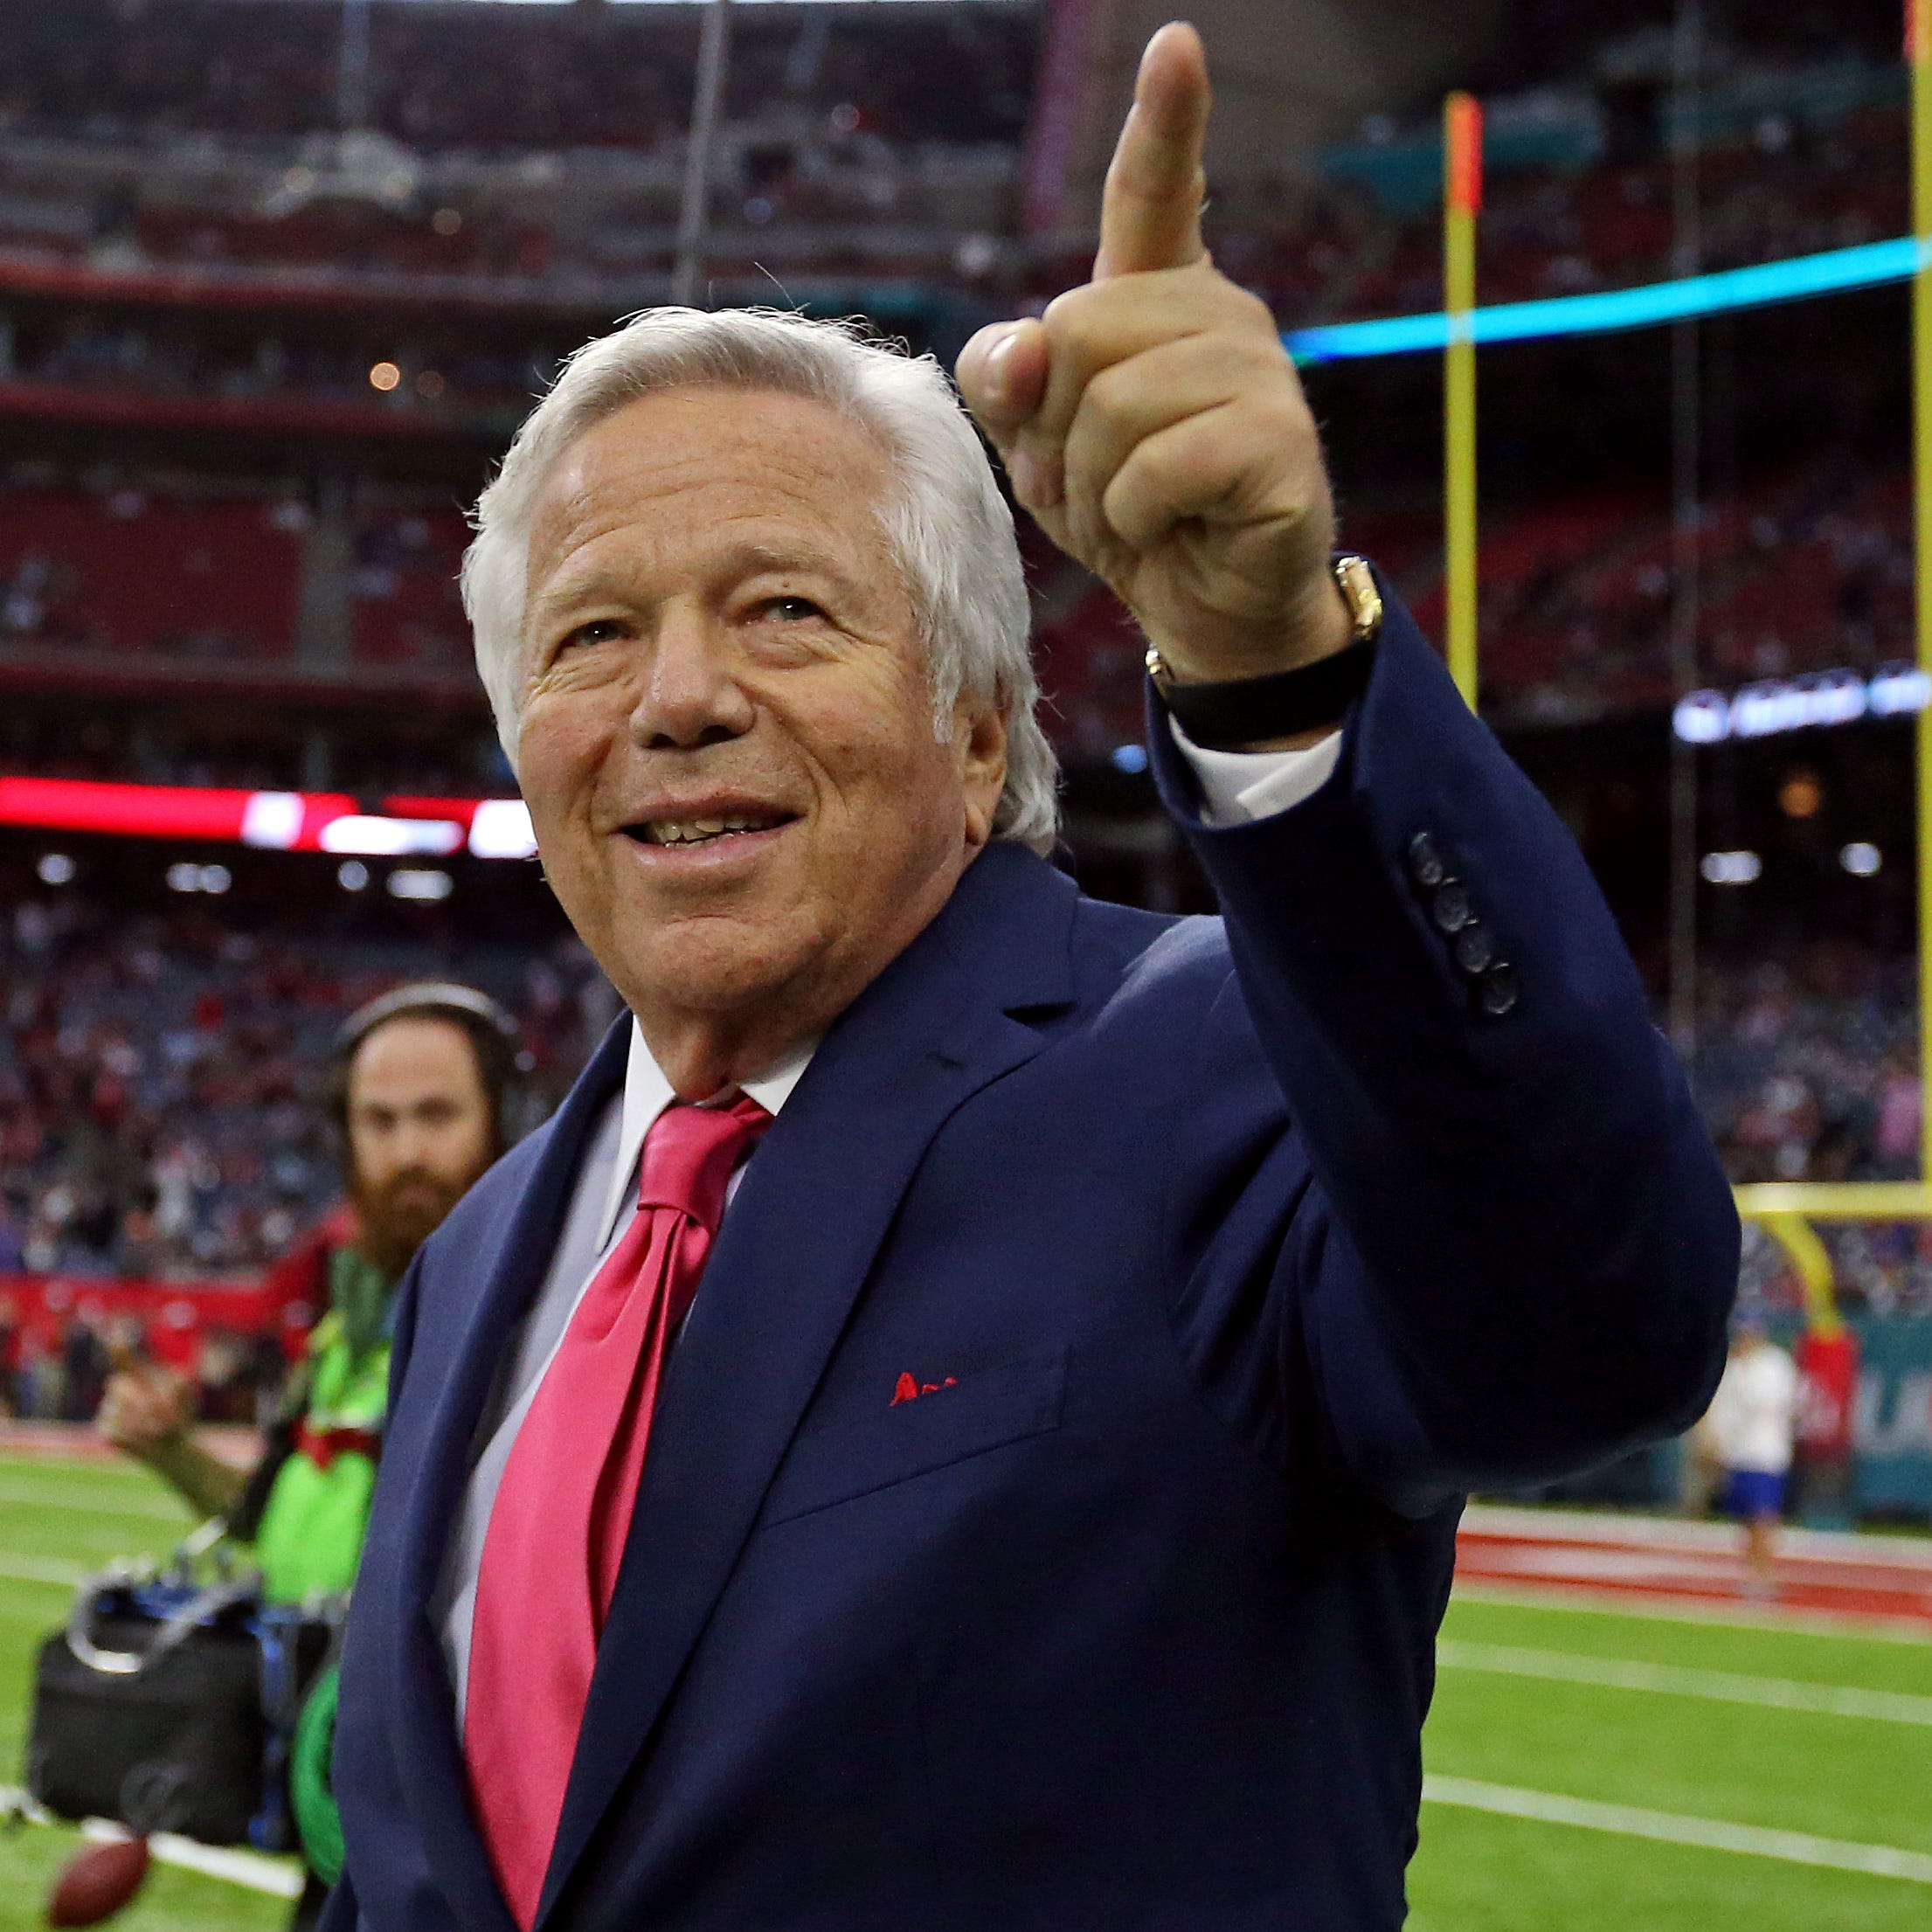 Former owner of spa where deputies said Robert Kraft solicited prostitution was at Trump Super Bowl party